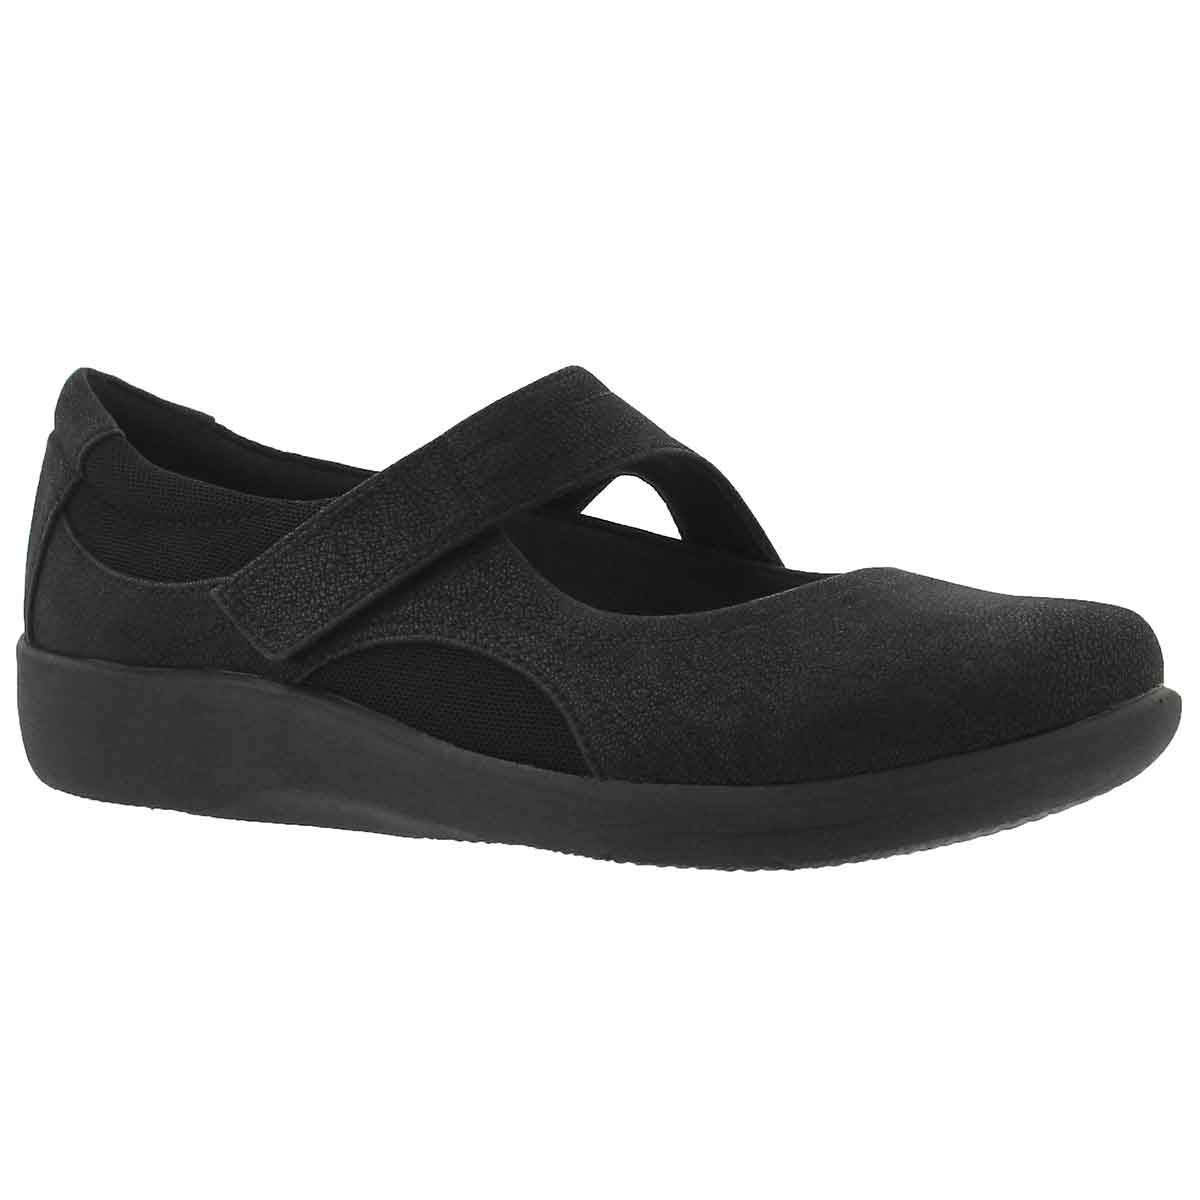 Women's SILLIAN BELLA black casual Mary Janes